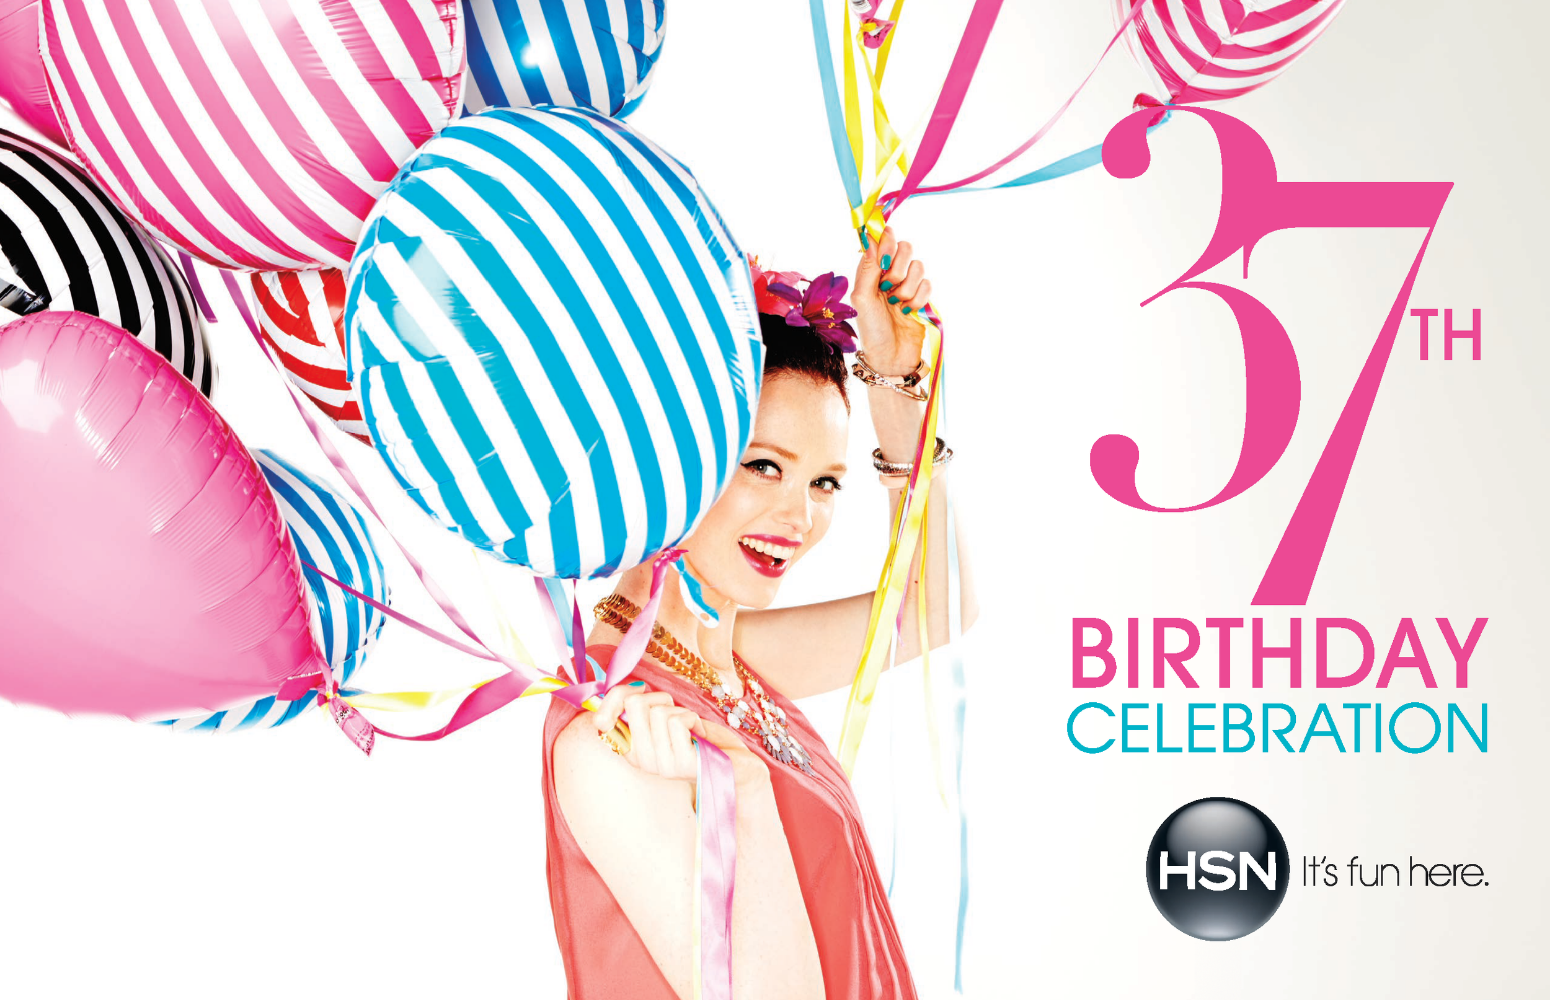 HSN 37TH BIRTHDAY CELEBRATION CAMPAIGN DECK_Page_01.png